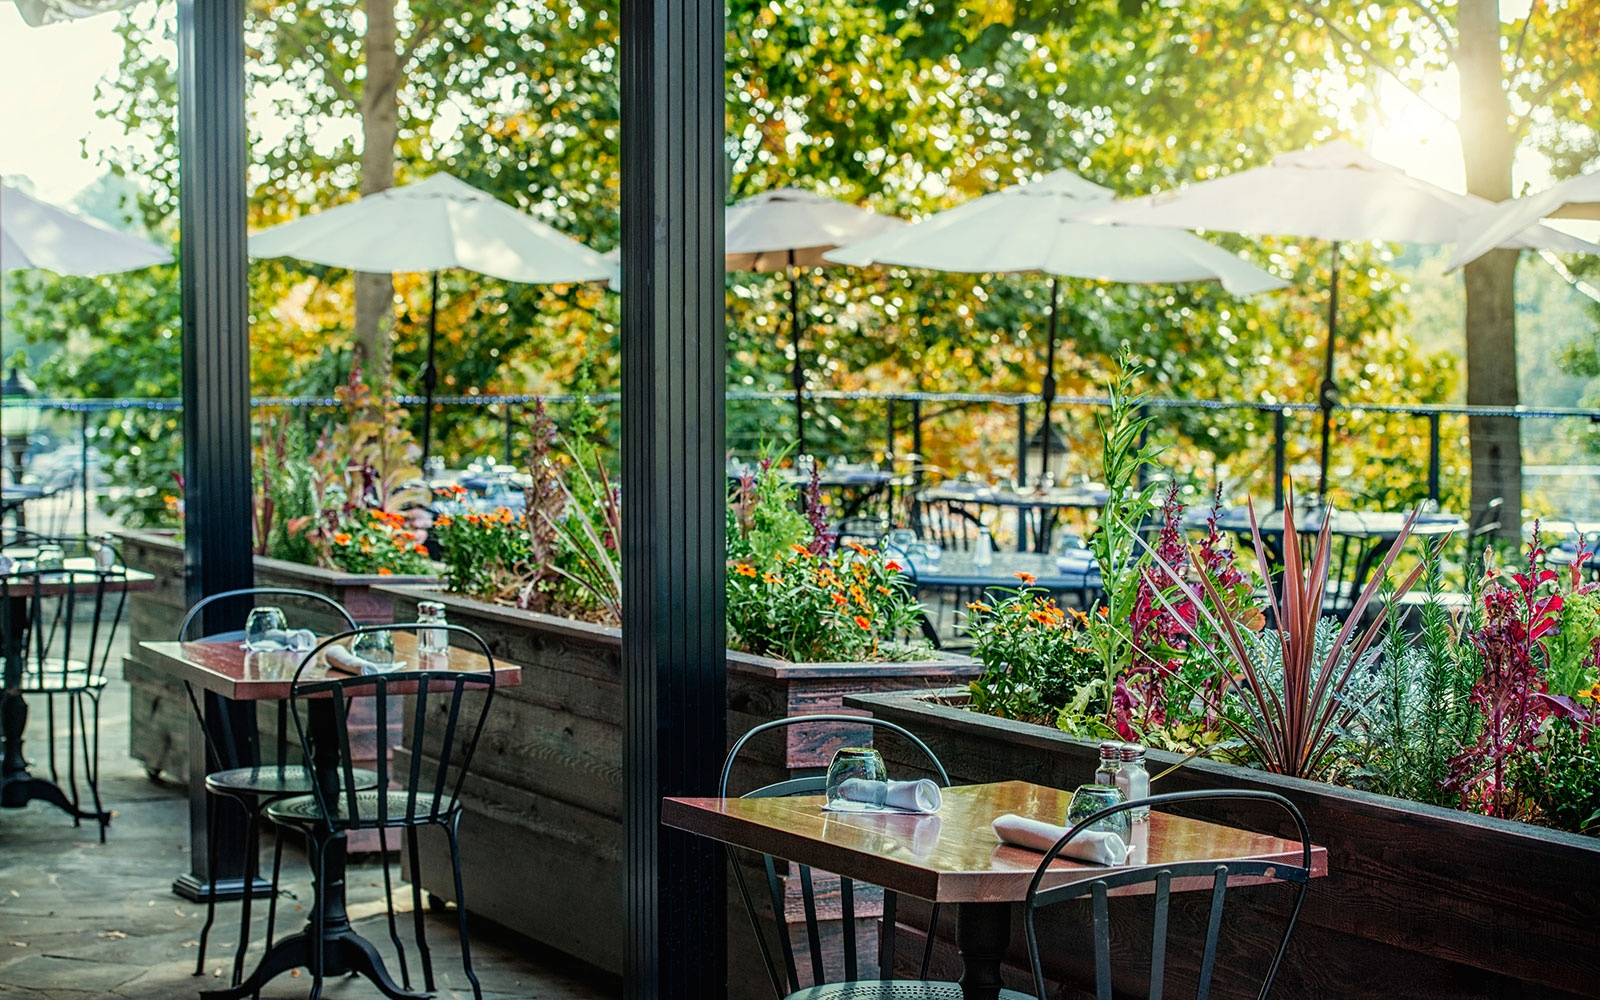 Passerelle Bistro in Greenville, South Carolina